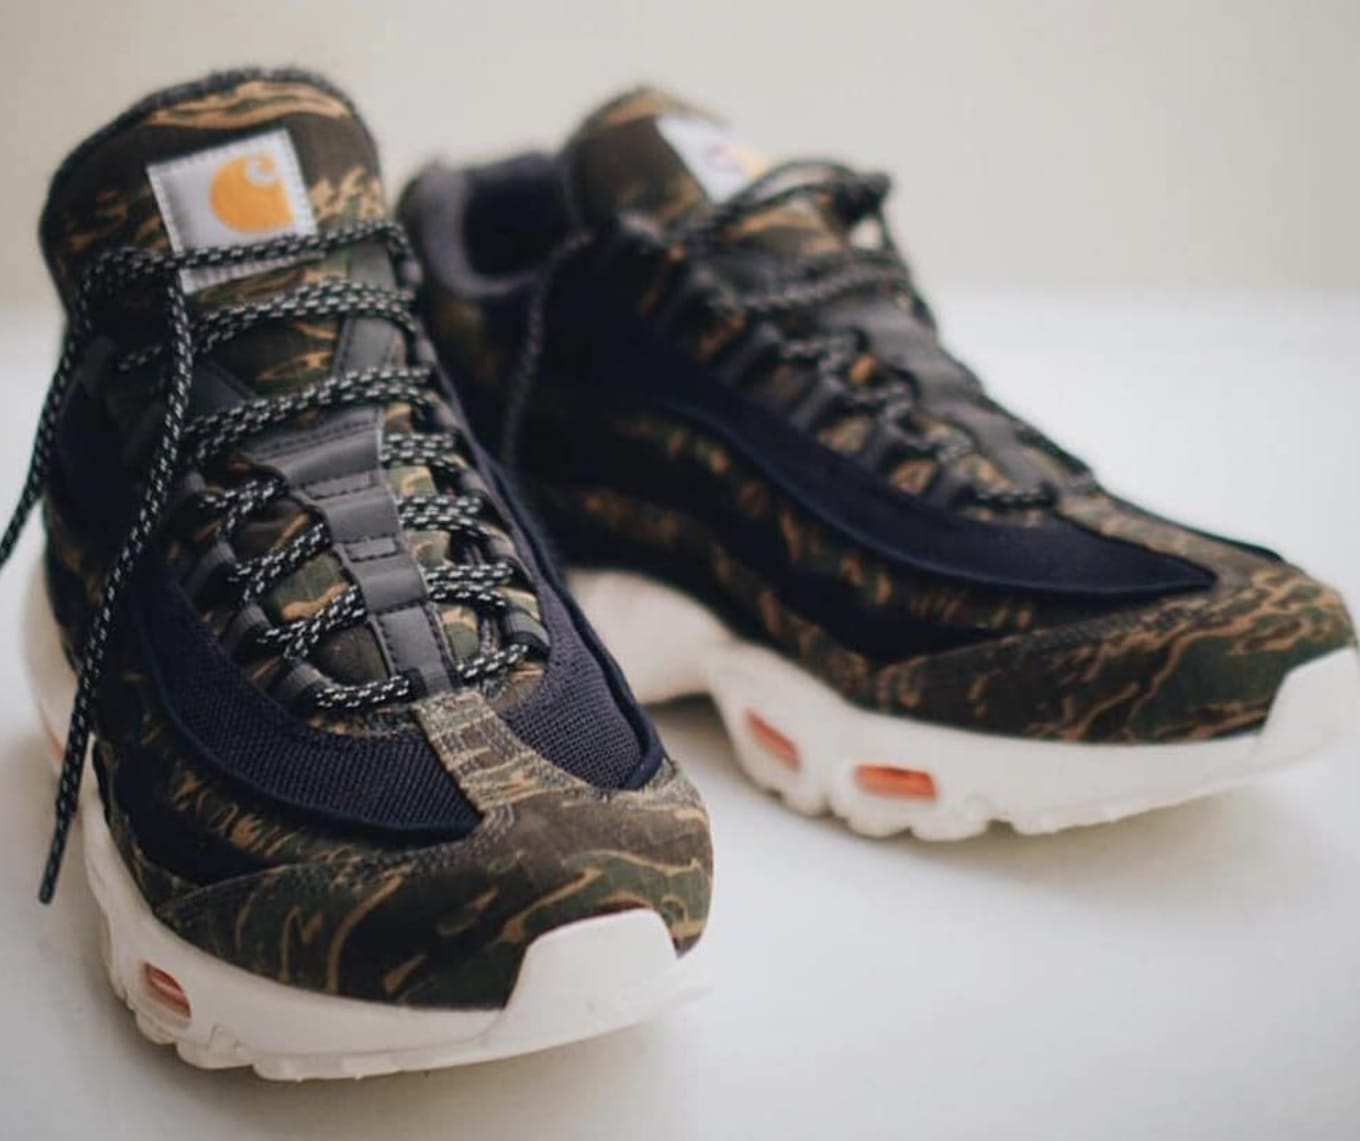 b7e696b743 Carhartt WIP x Nike Air Max 95 Collaboration Release Date | Sole ...